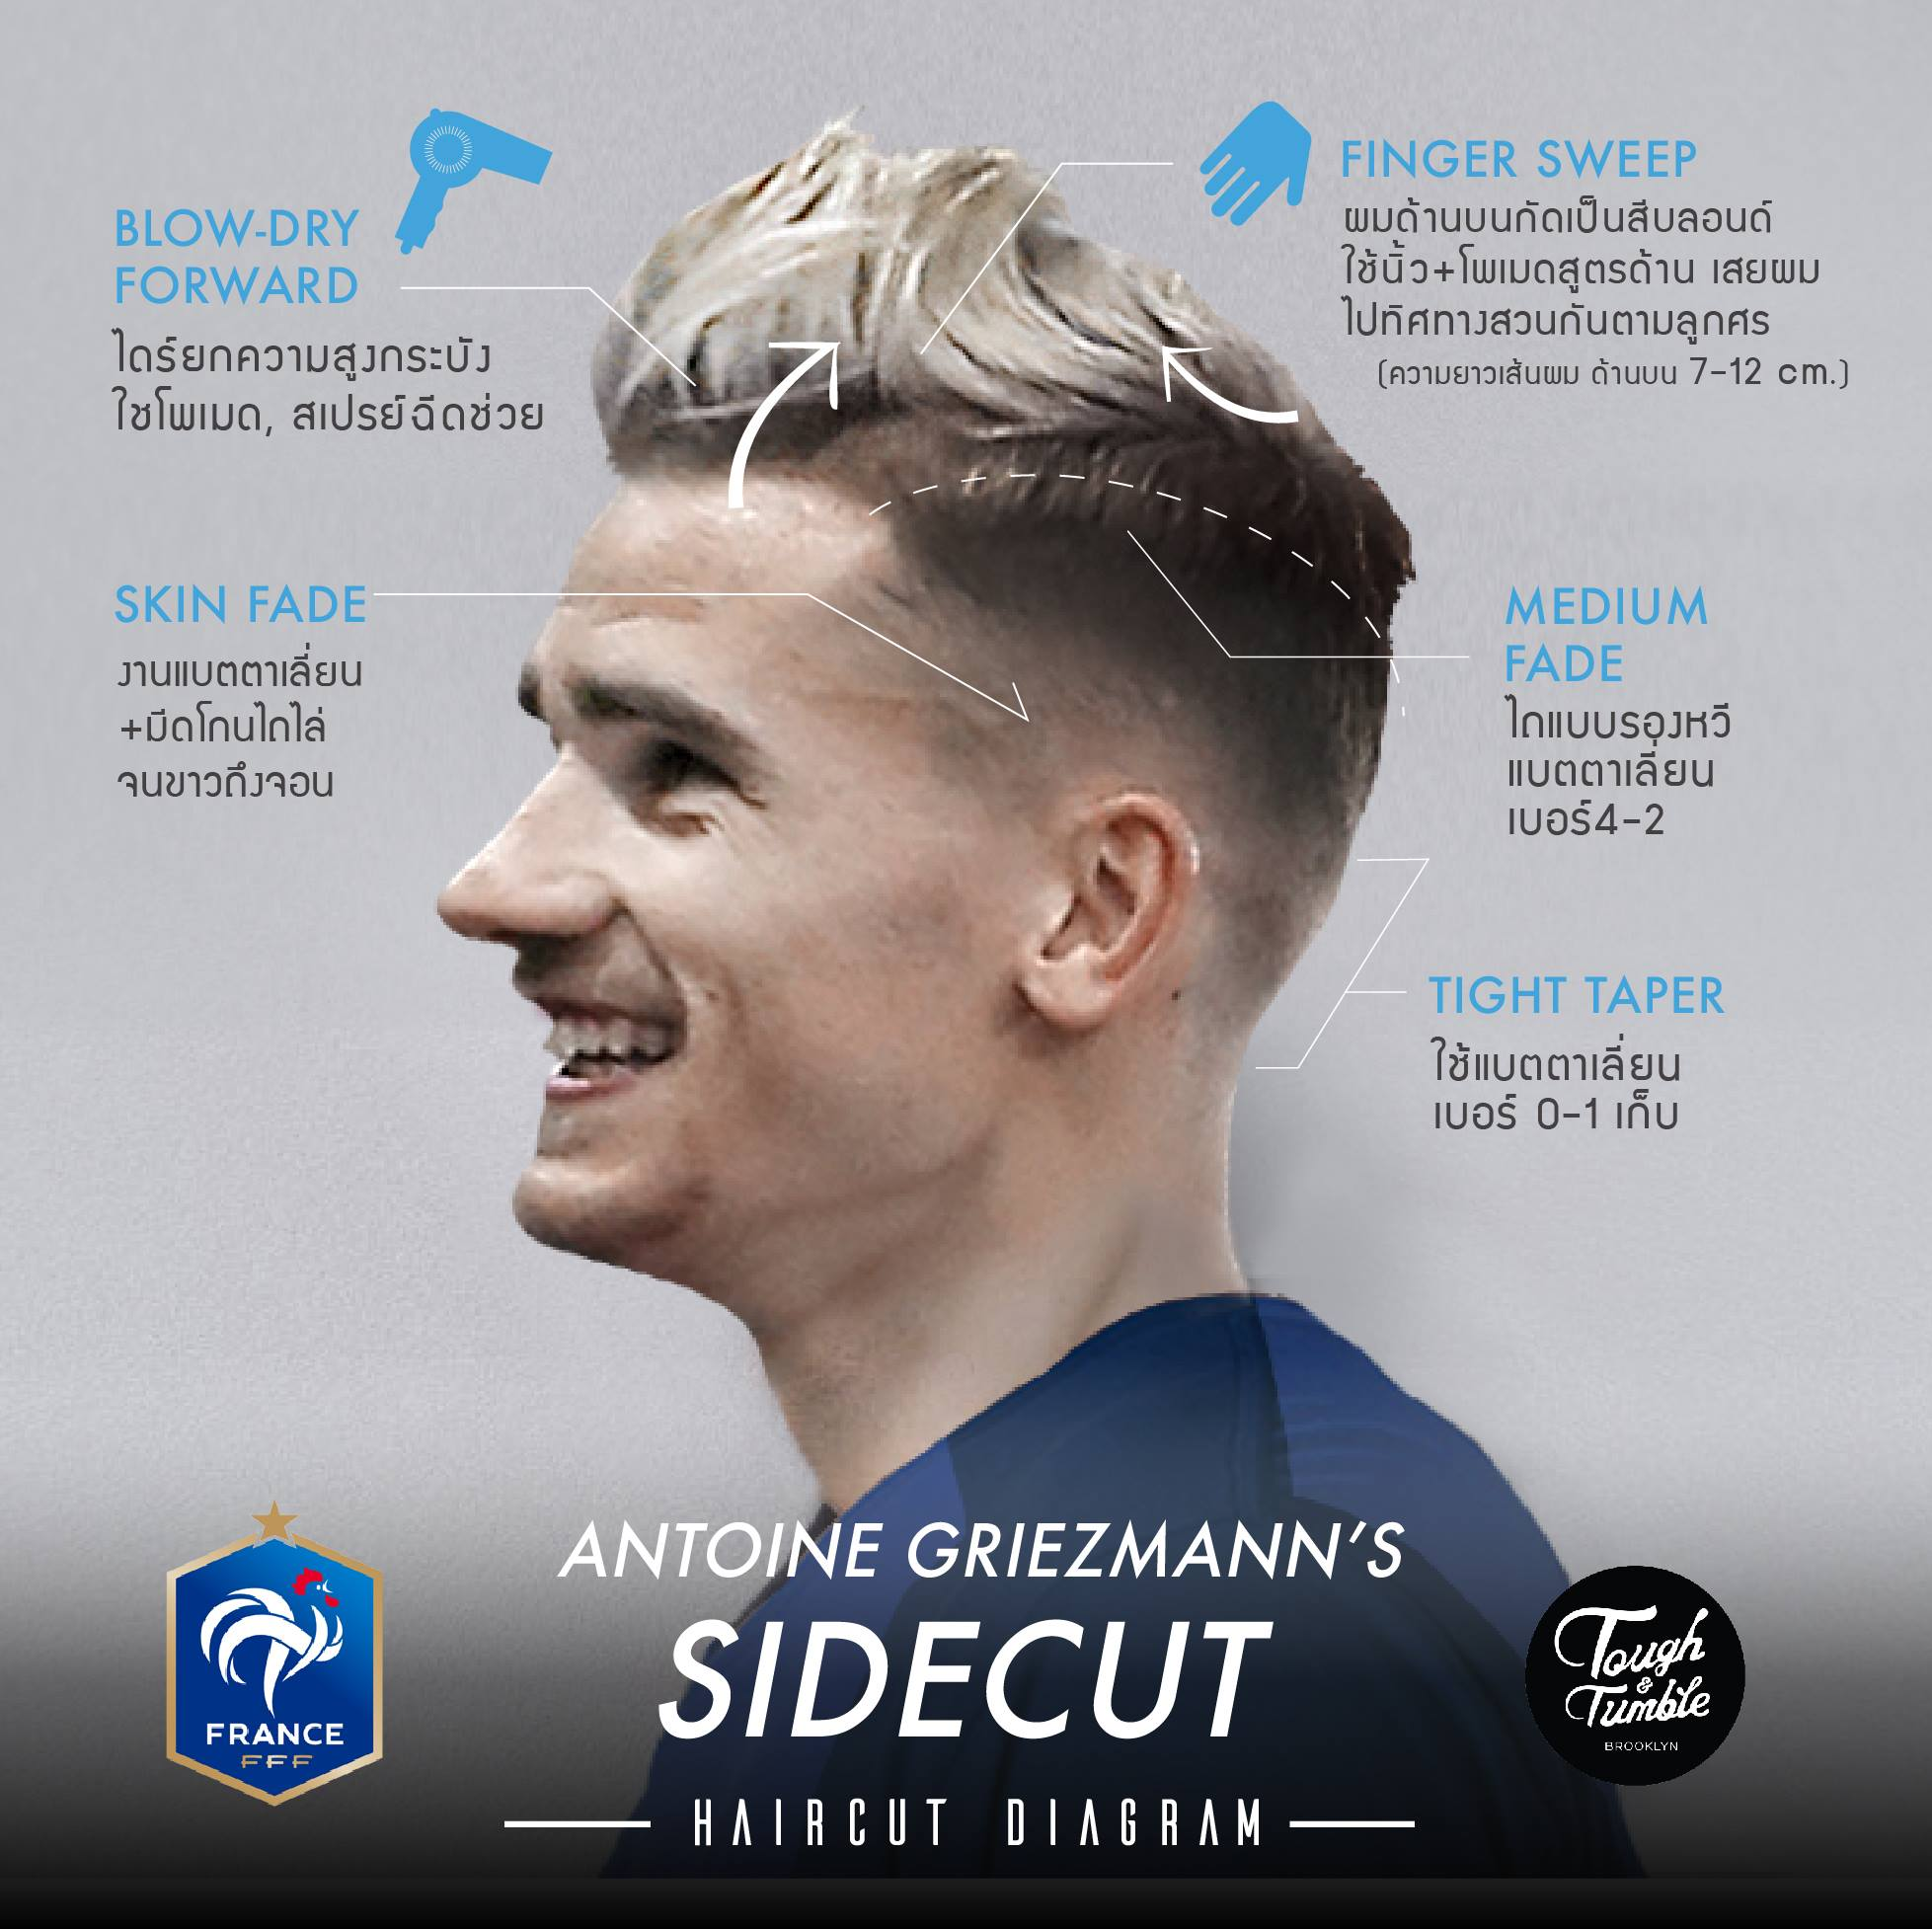 Griezmann+Sidecut+Haircut Diagram